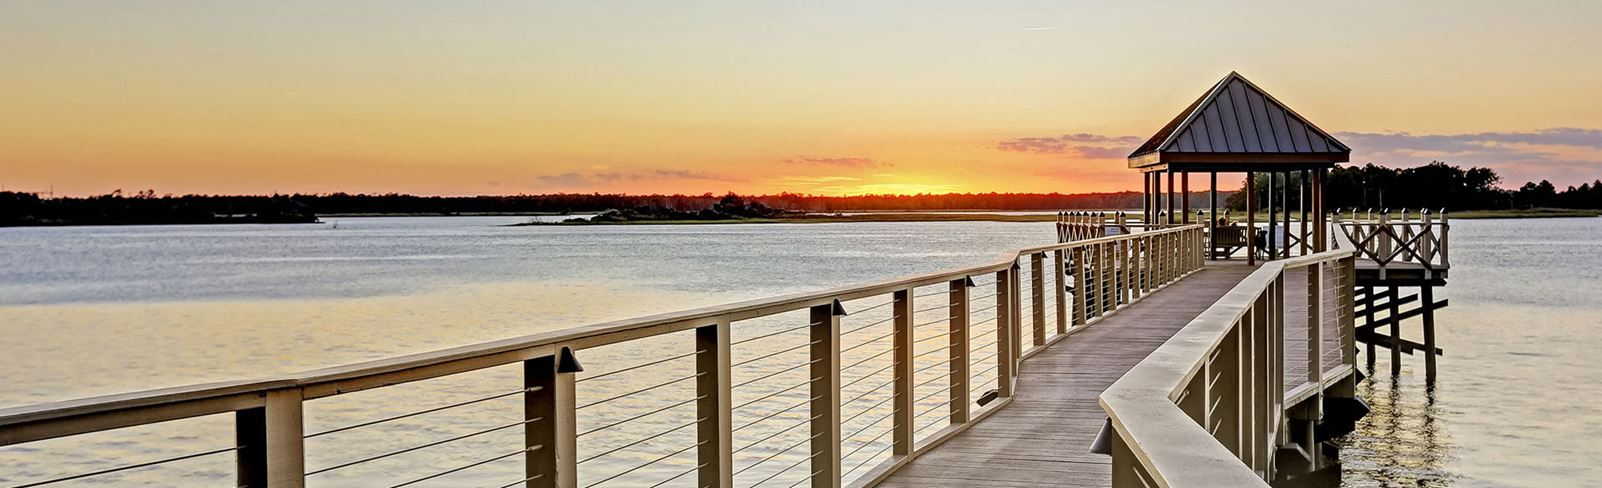 Pier at Riverlights New Home Community - Wilmington, NC